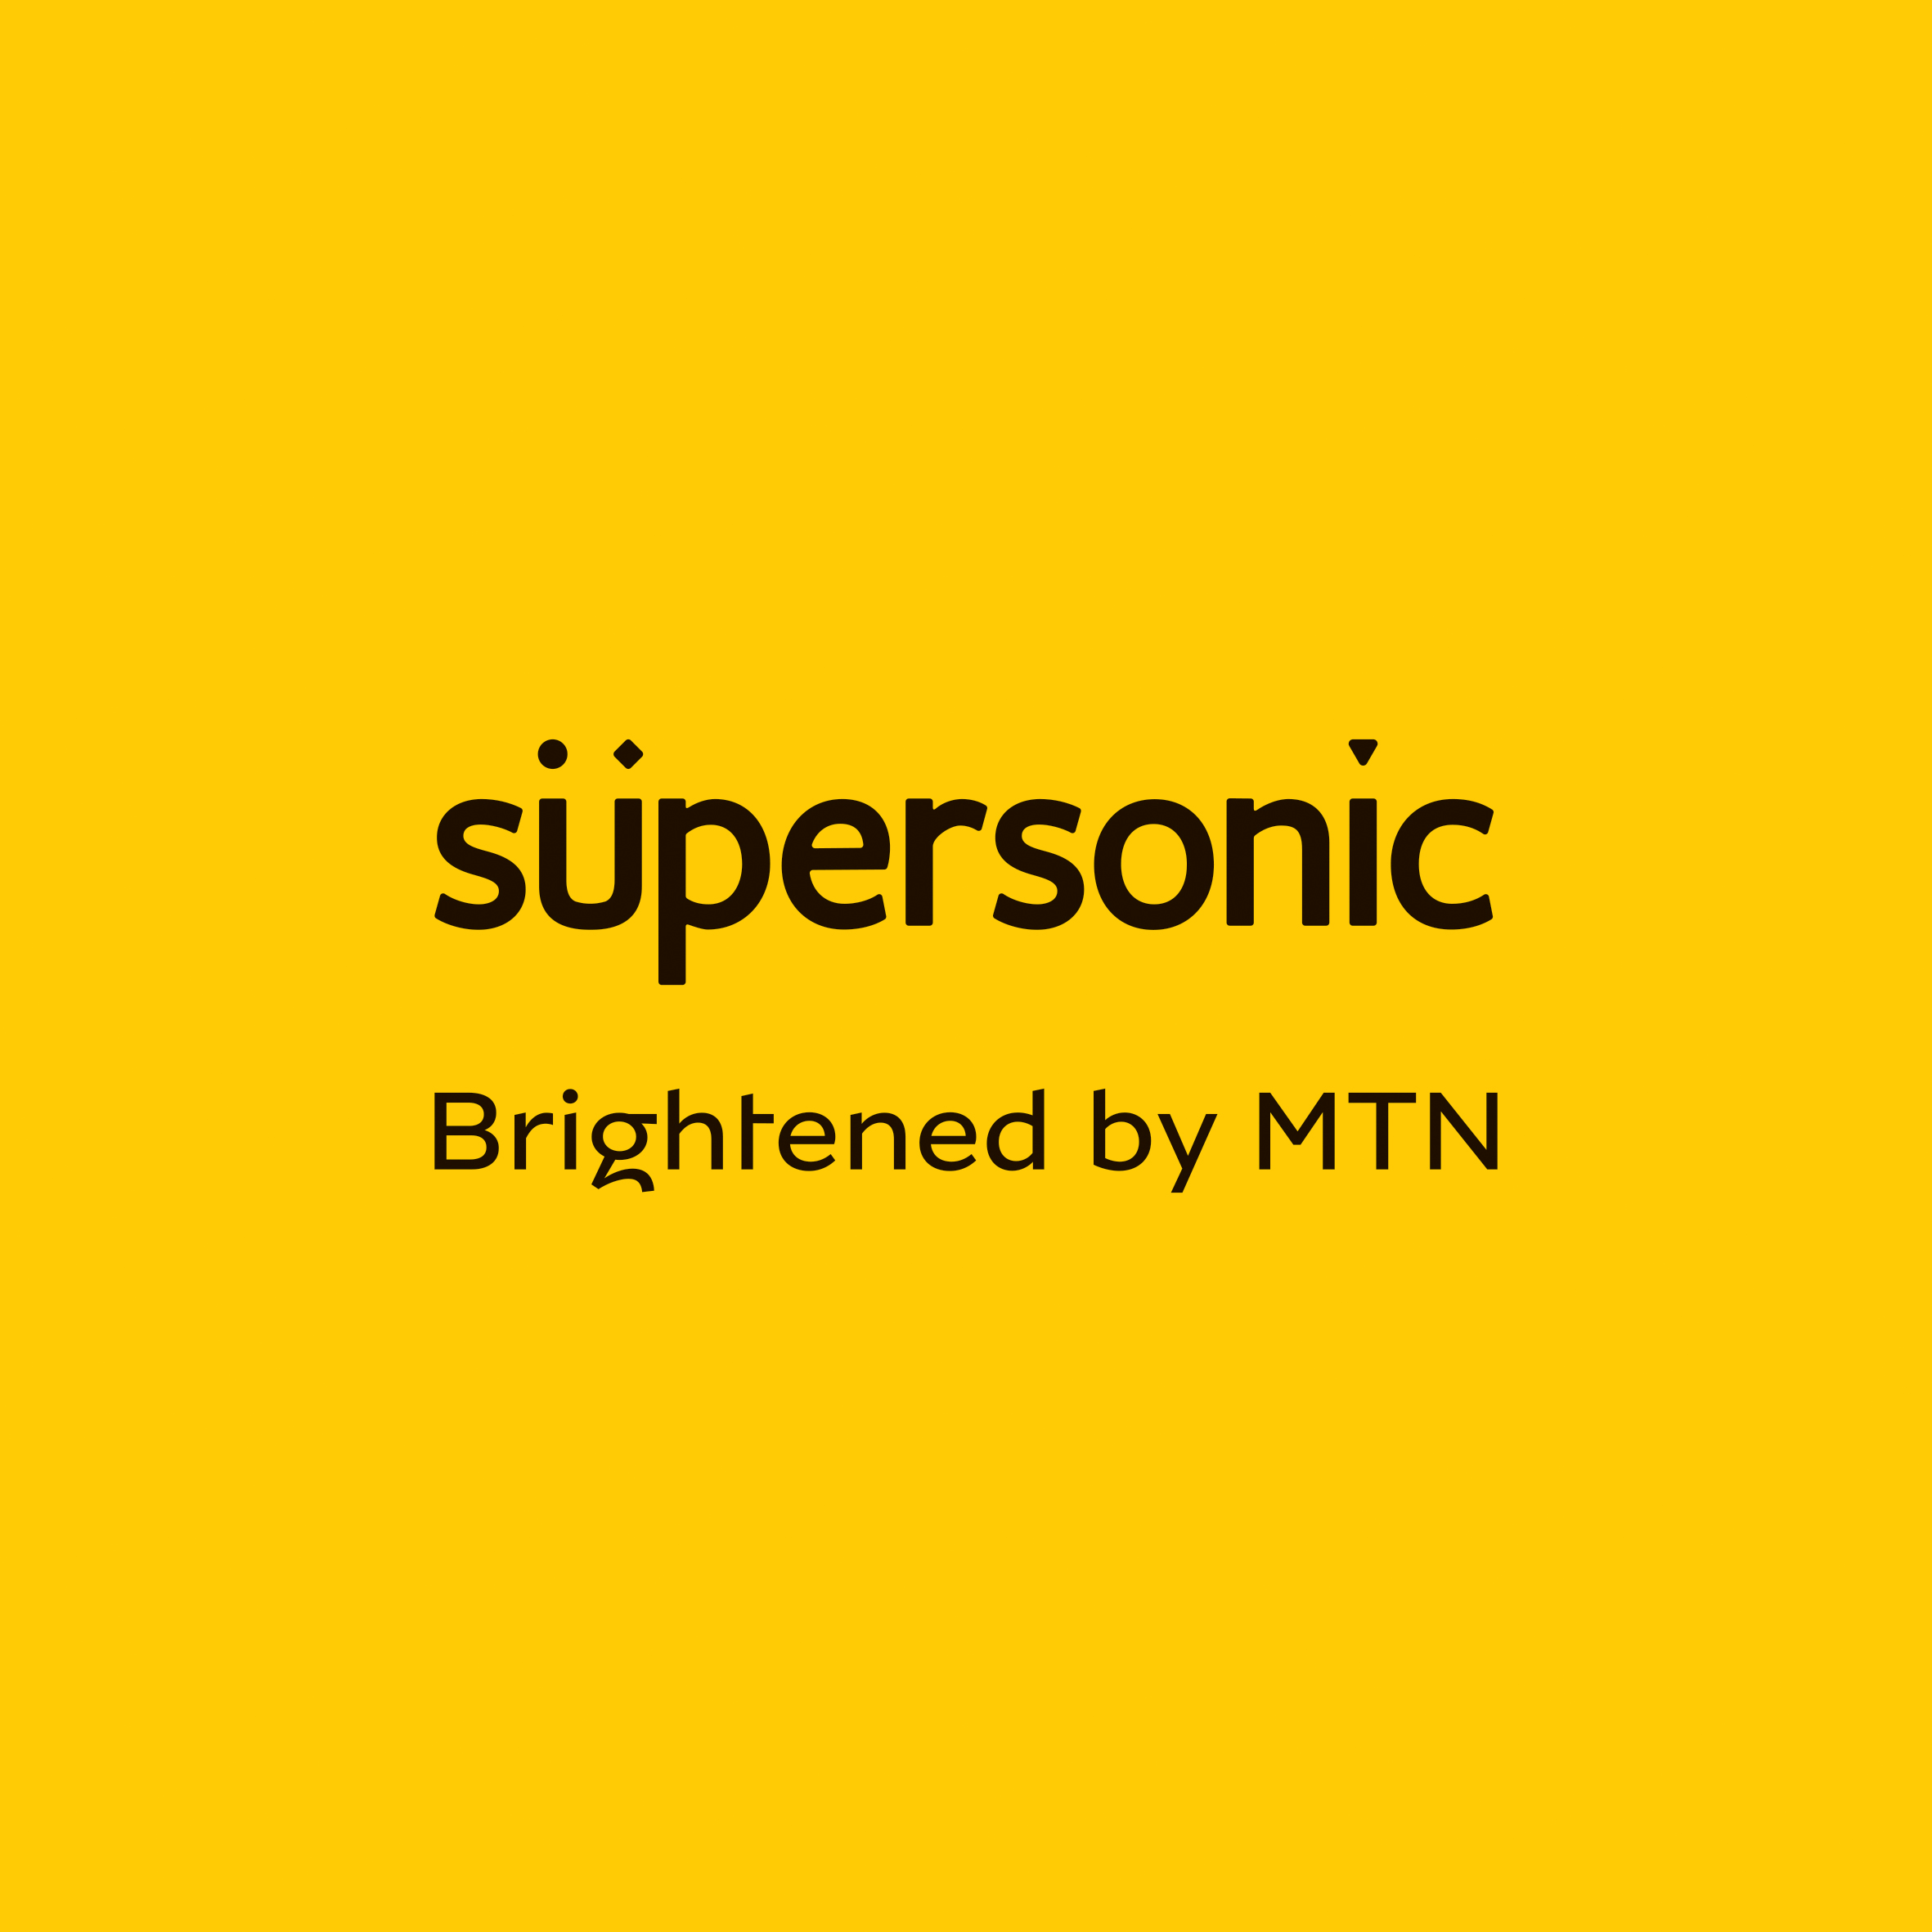 Supersonic: MTN's Insanely Fast and Reliable Fibre Internet